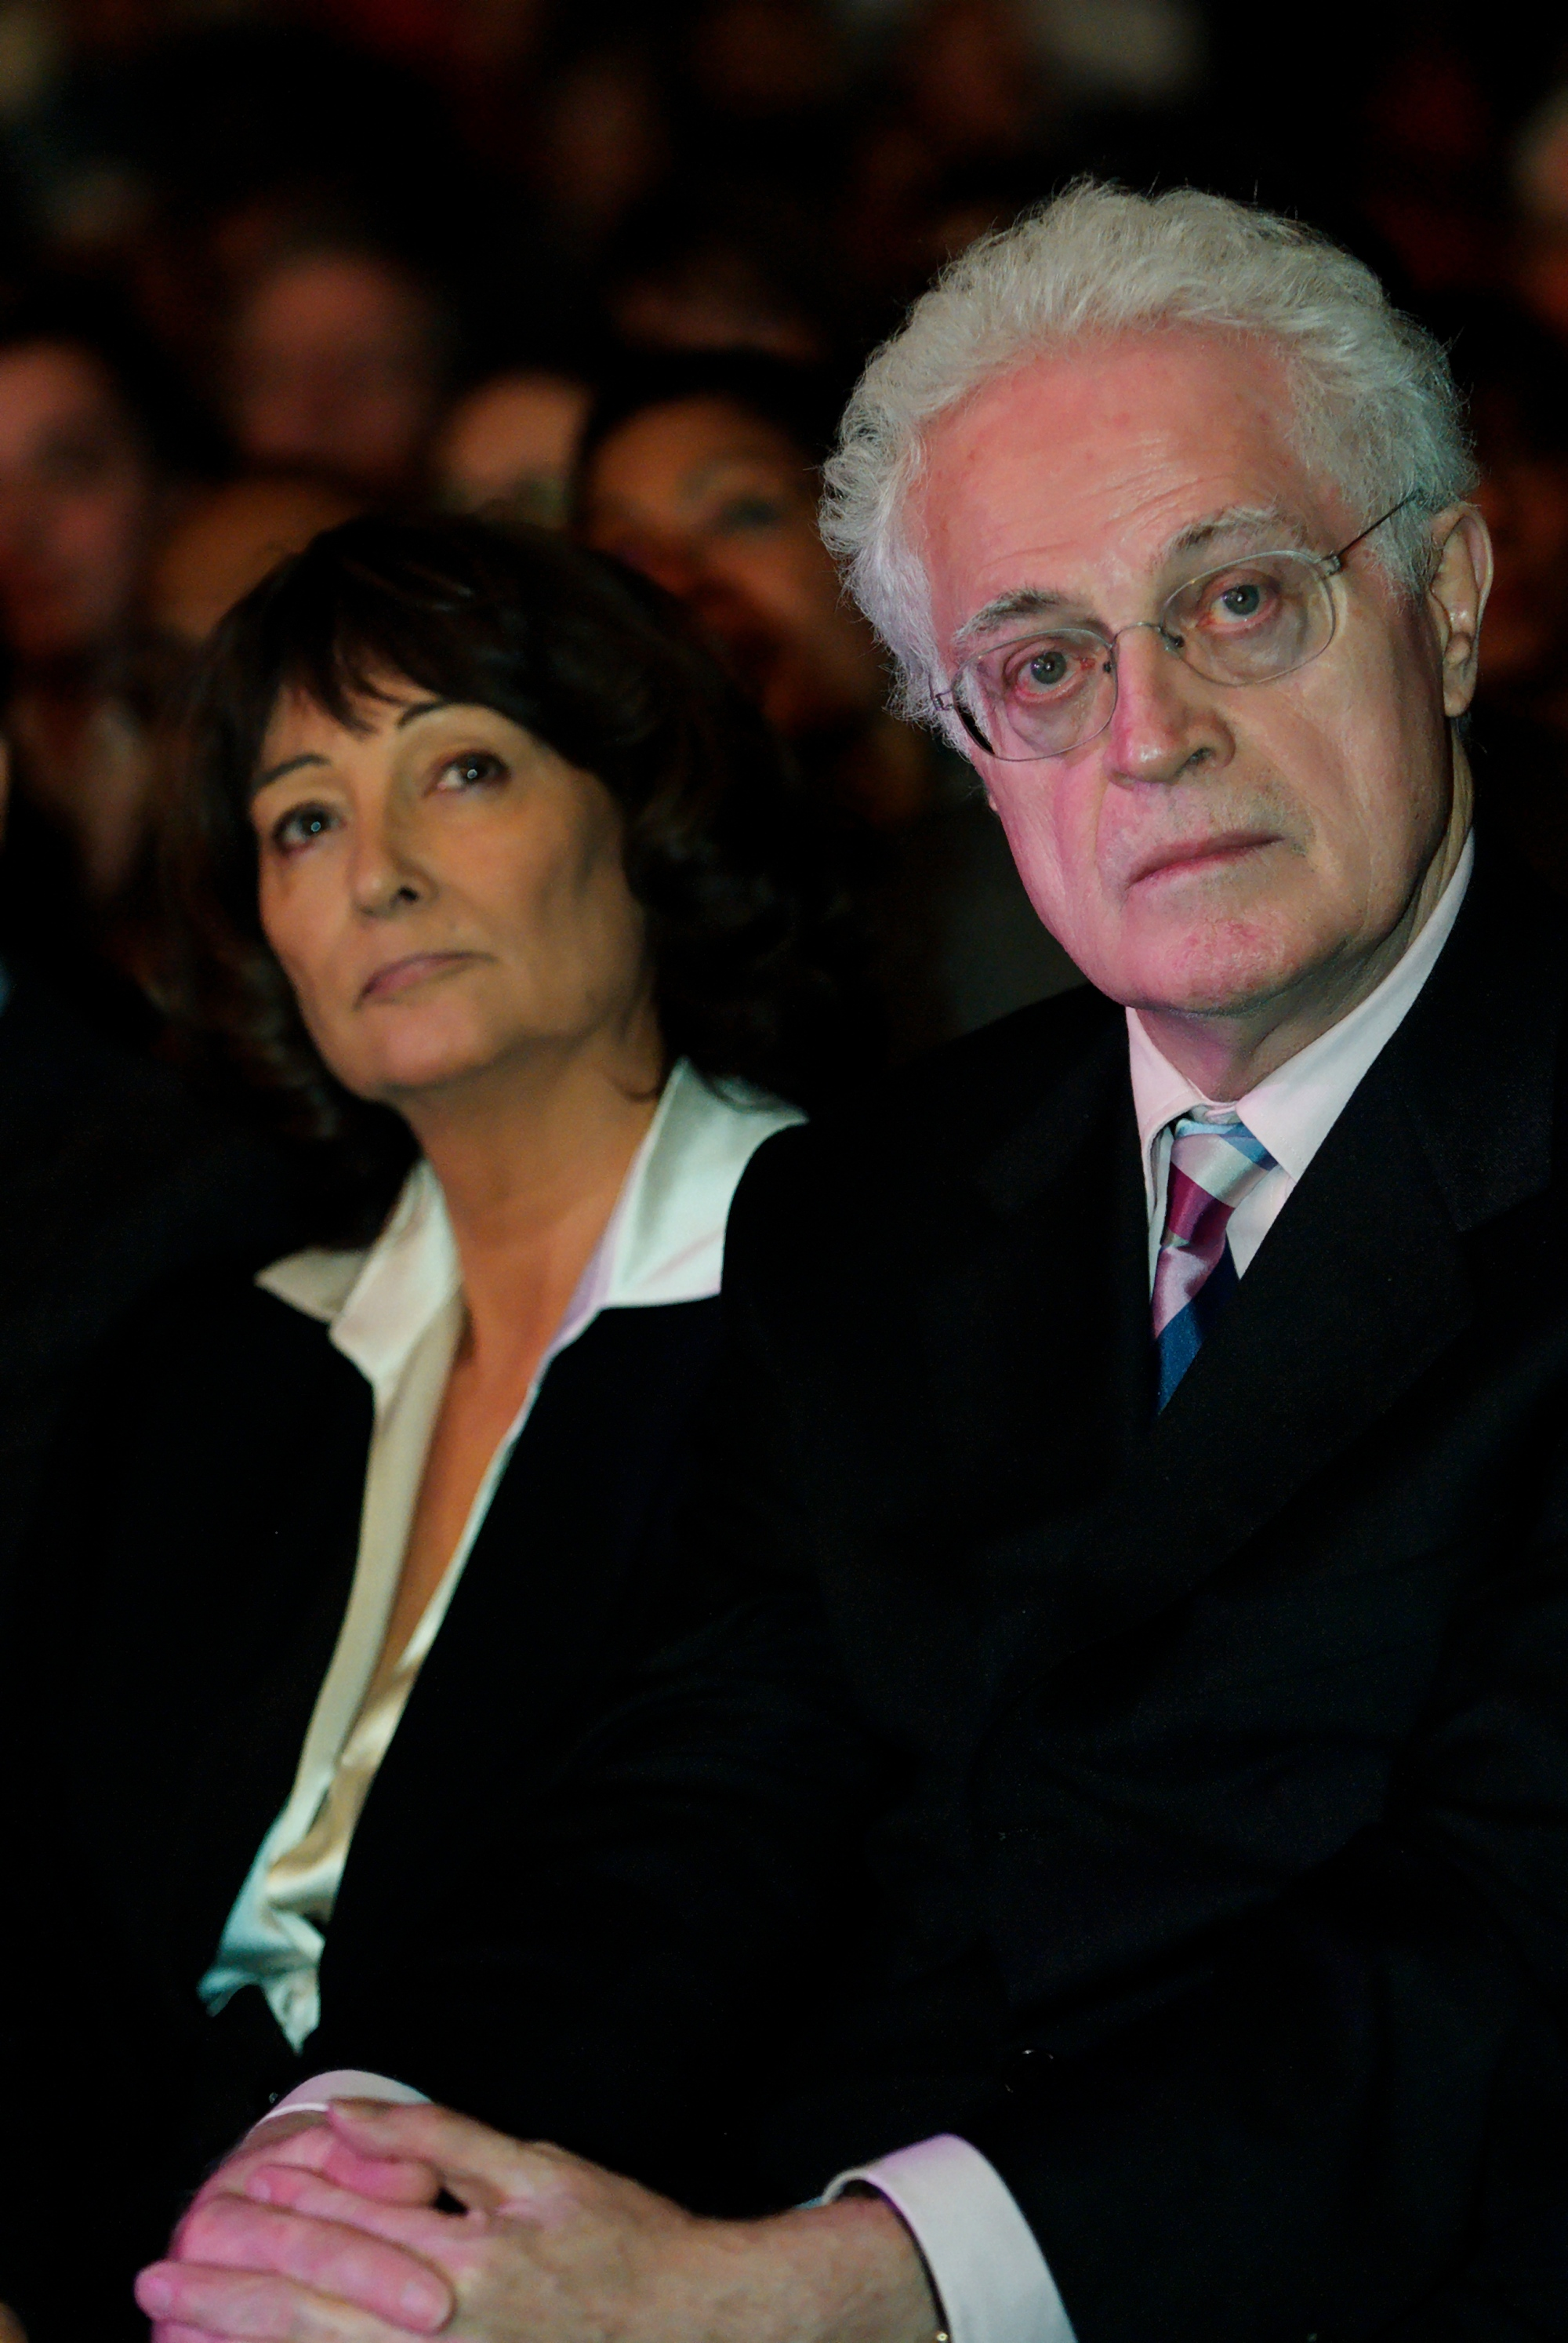 Sylviane Agacinski with husband Lionel Jospin, 2008.